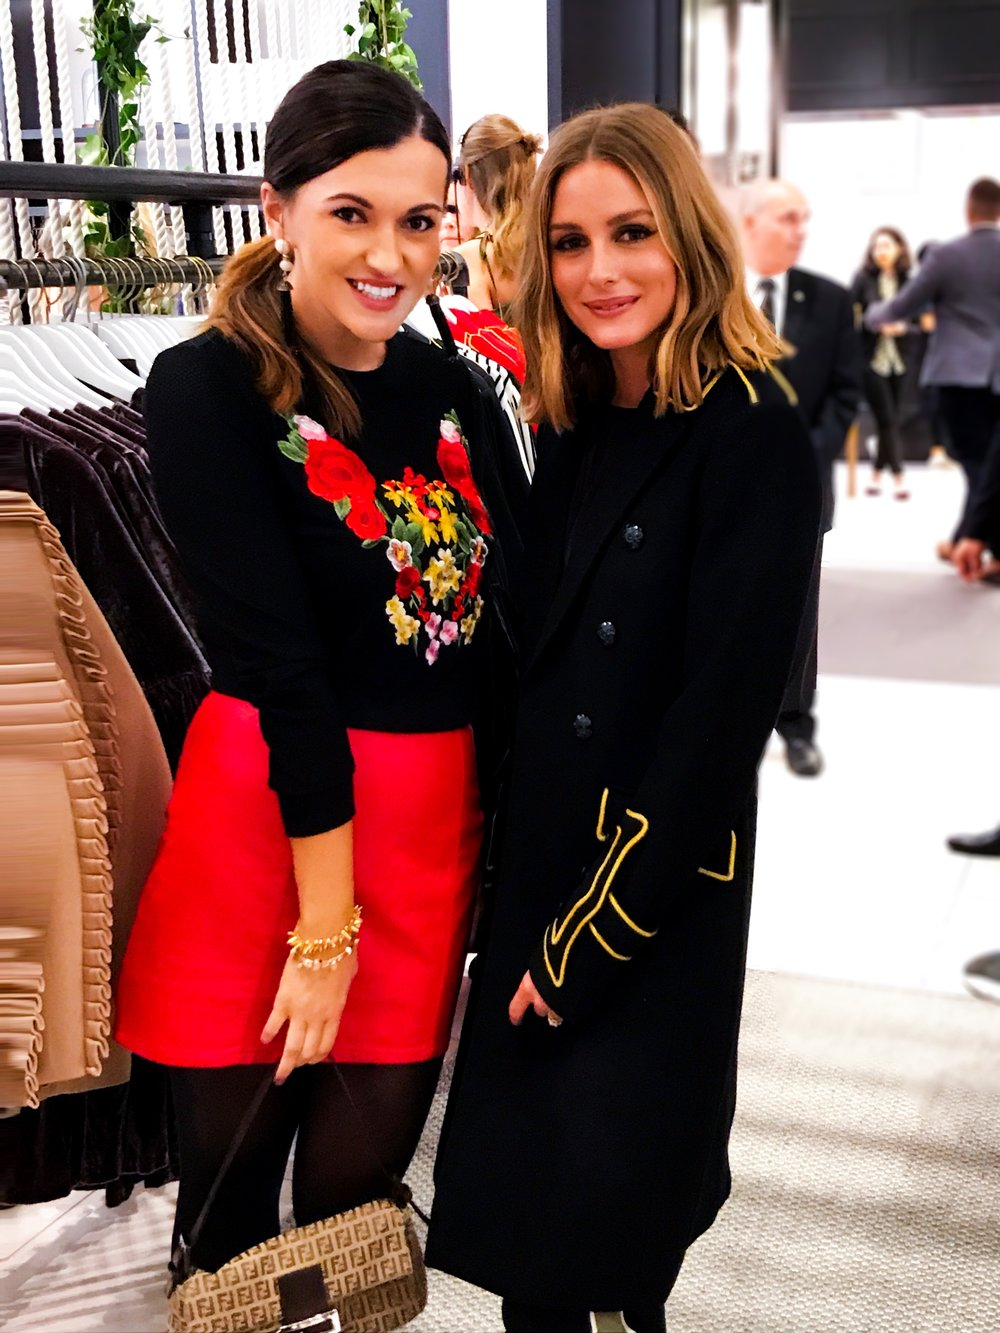 One of my favorite moments from NYFW was meeting Olivia Palmero. She collaborated with Banana Republic and designed beauitful ready to wear pieces that are simply stunning! I have admired her classy, chic and feminine style for years. She was so sweet and more gorgeous in person!